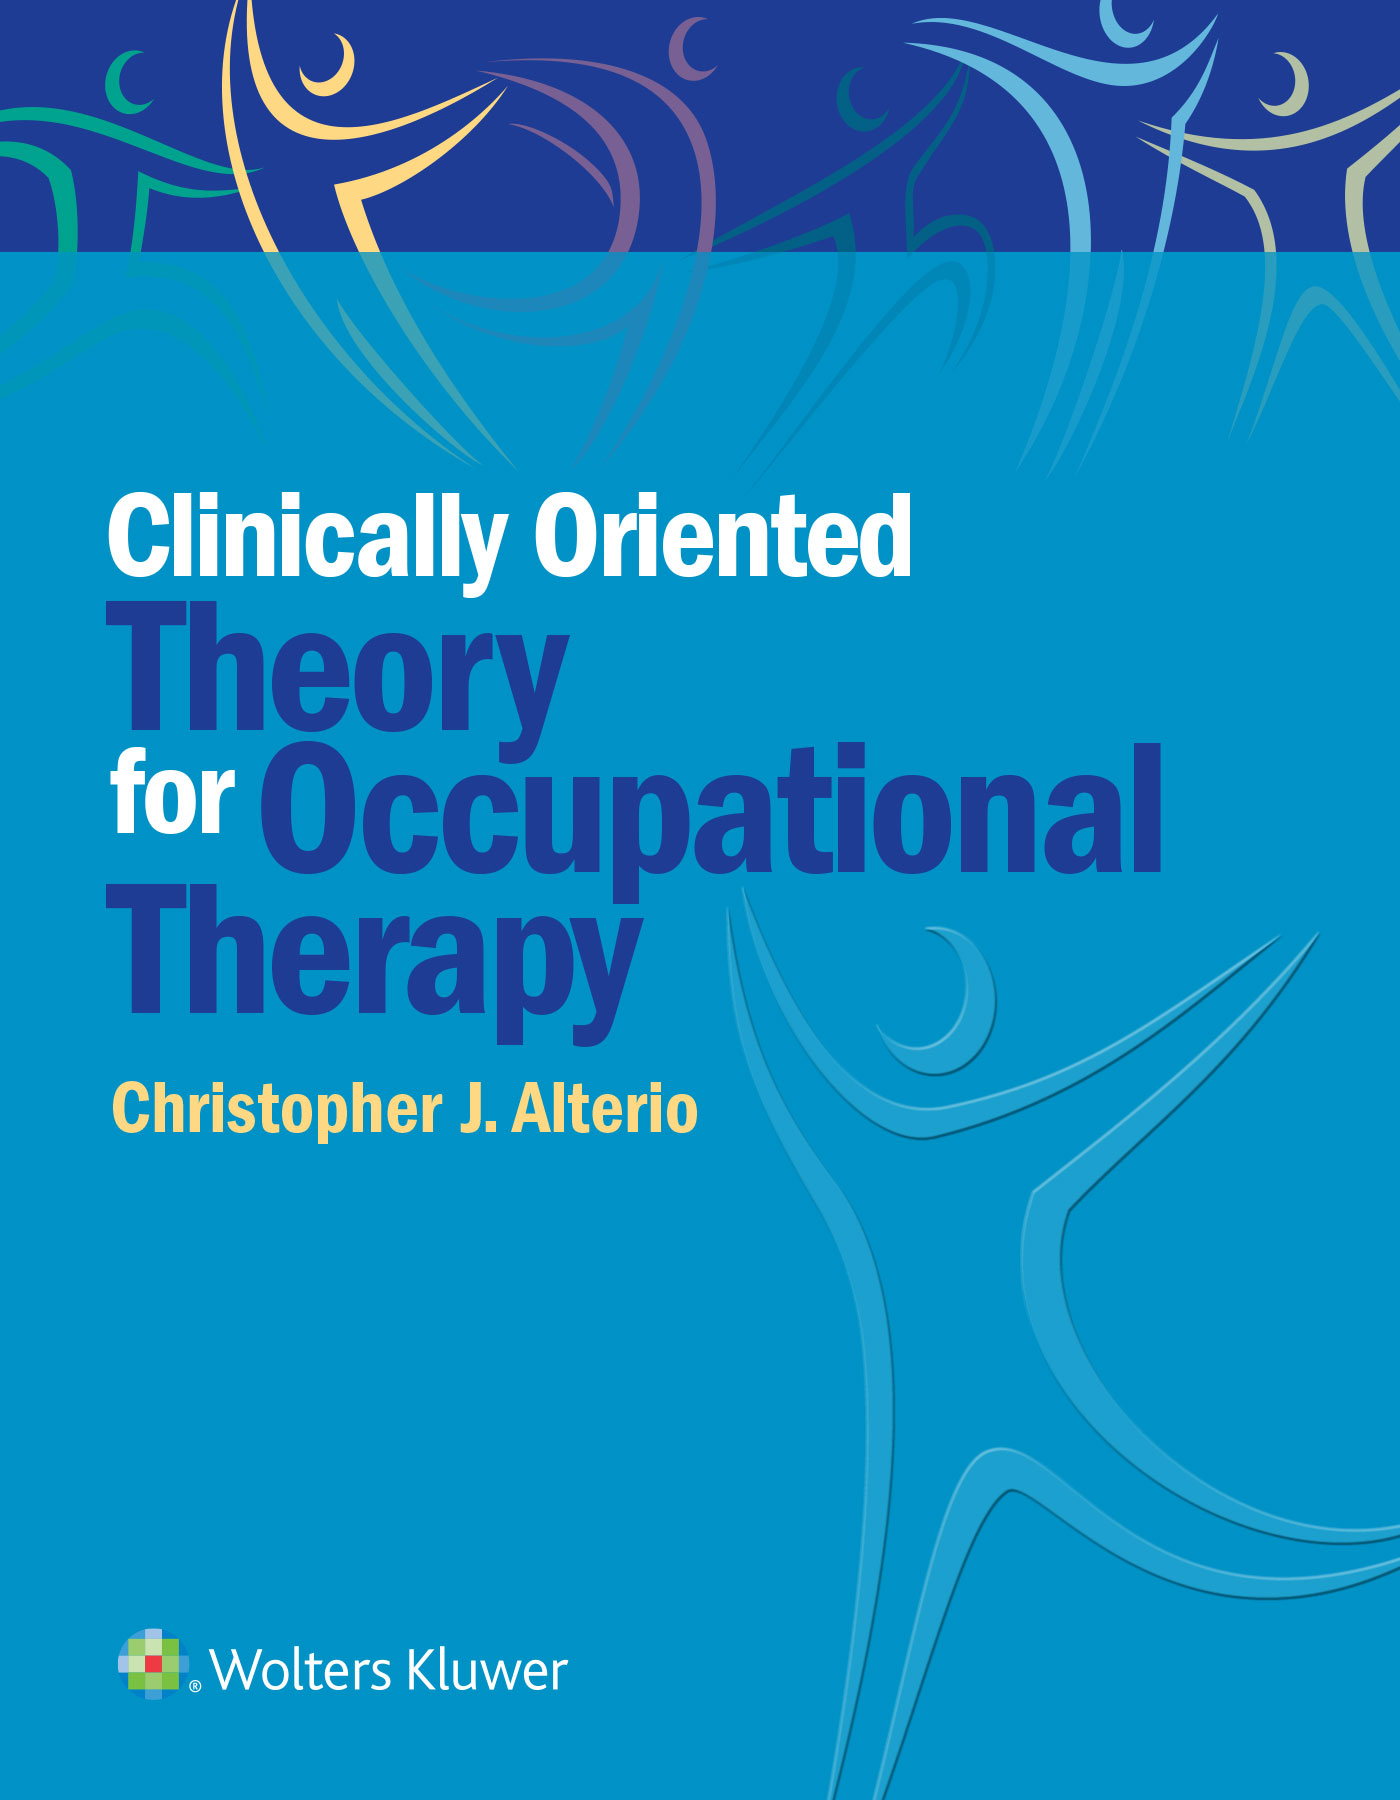 Clinically-Oriented Theory for Occupational Therapy